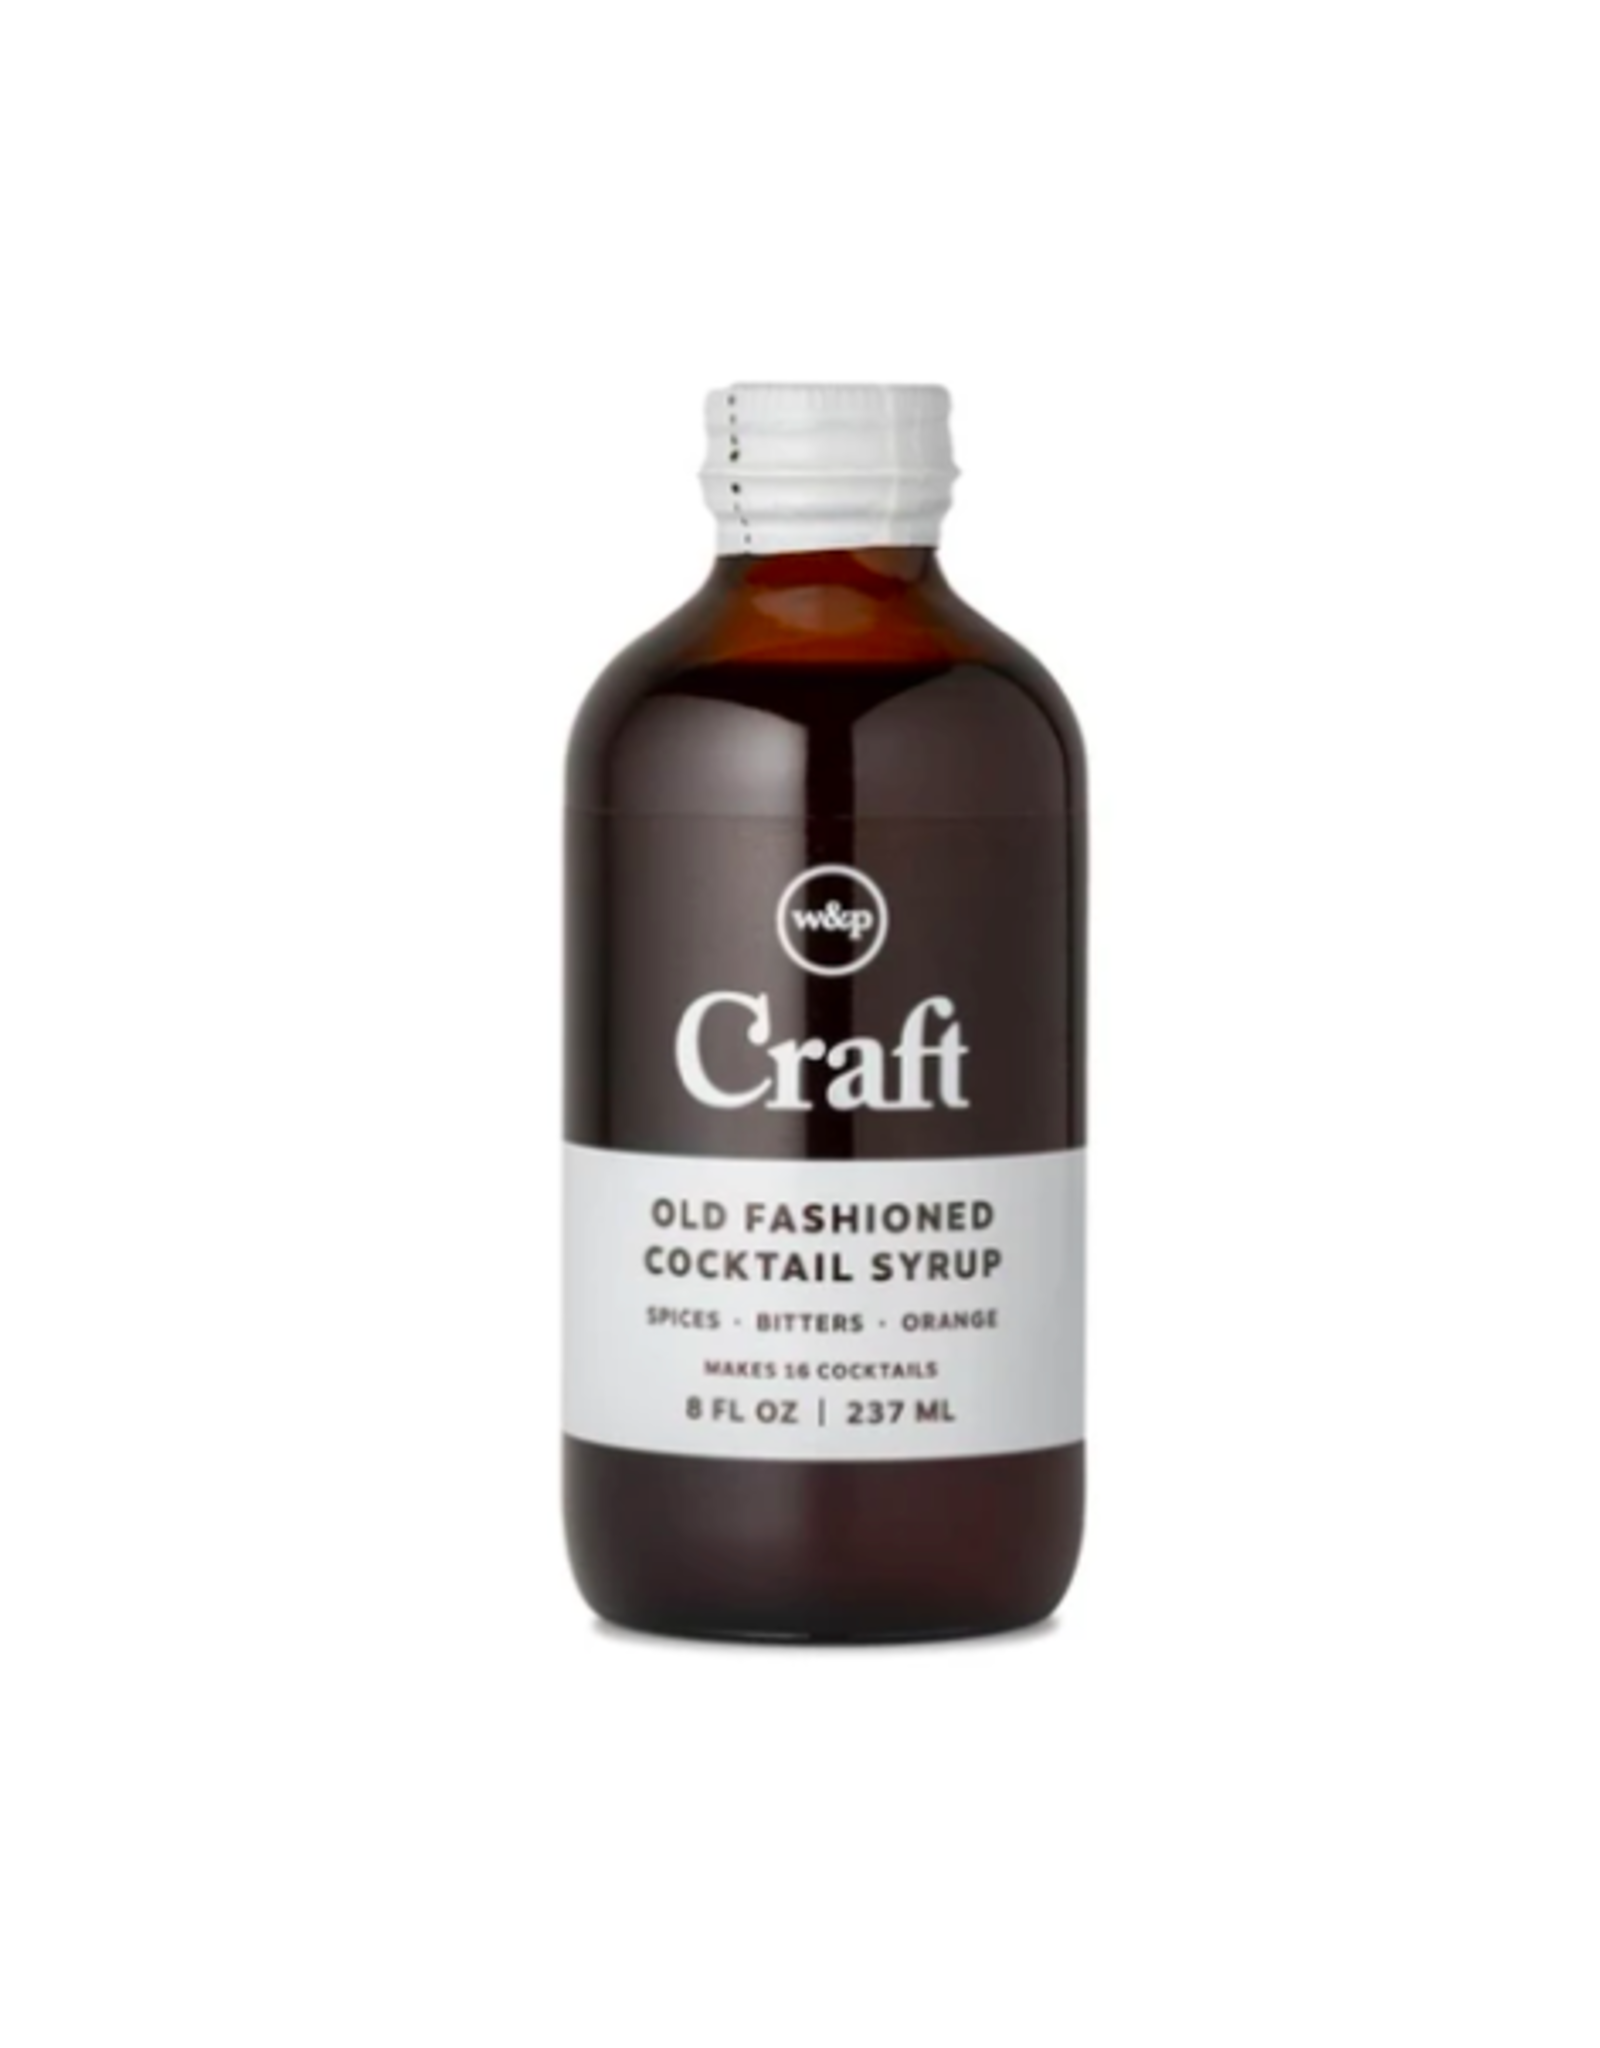 W&P - Cocktail Syrup / Old Fashioned, 8oz